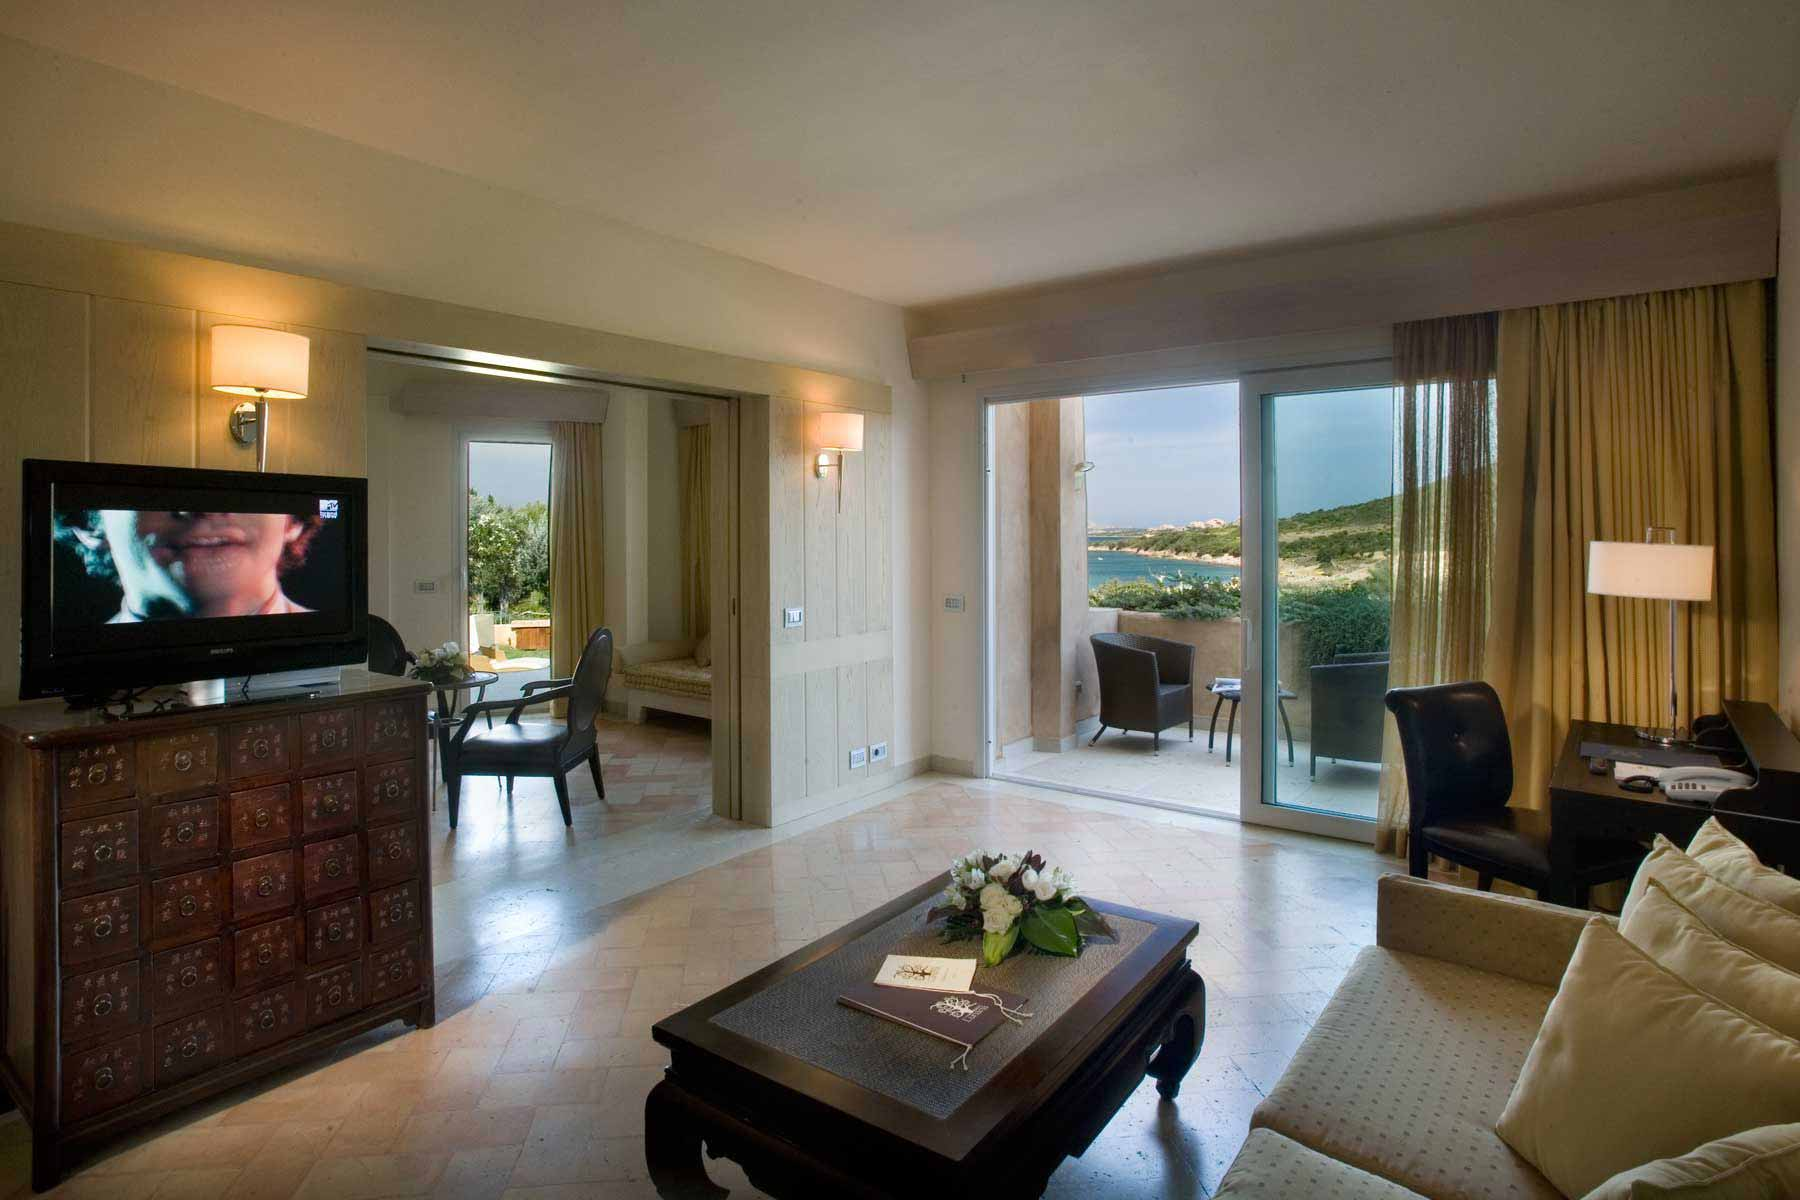 Suite living area at L'Ea Bianca Luxury Resort